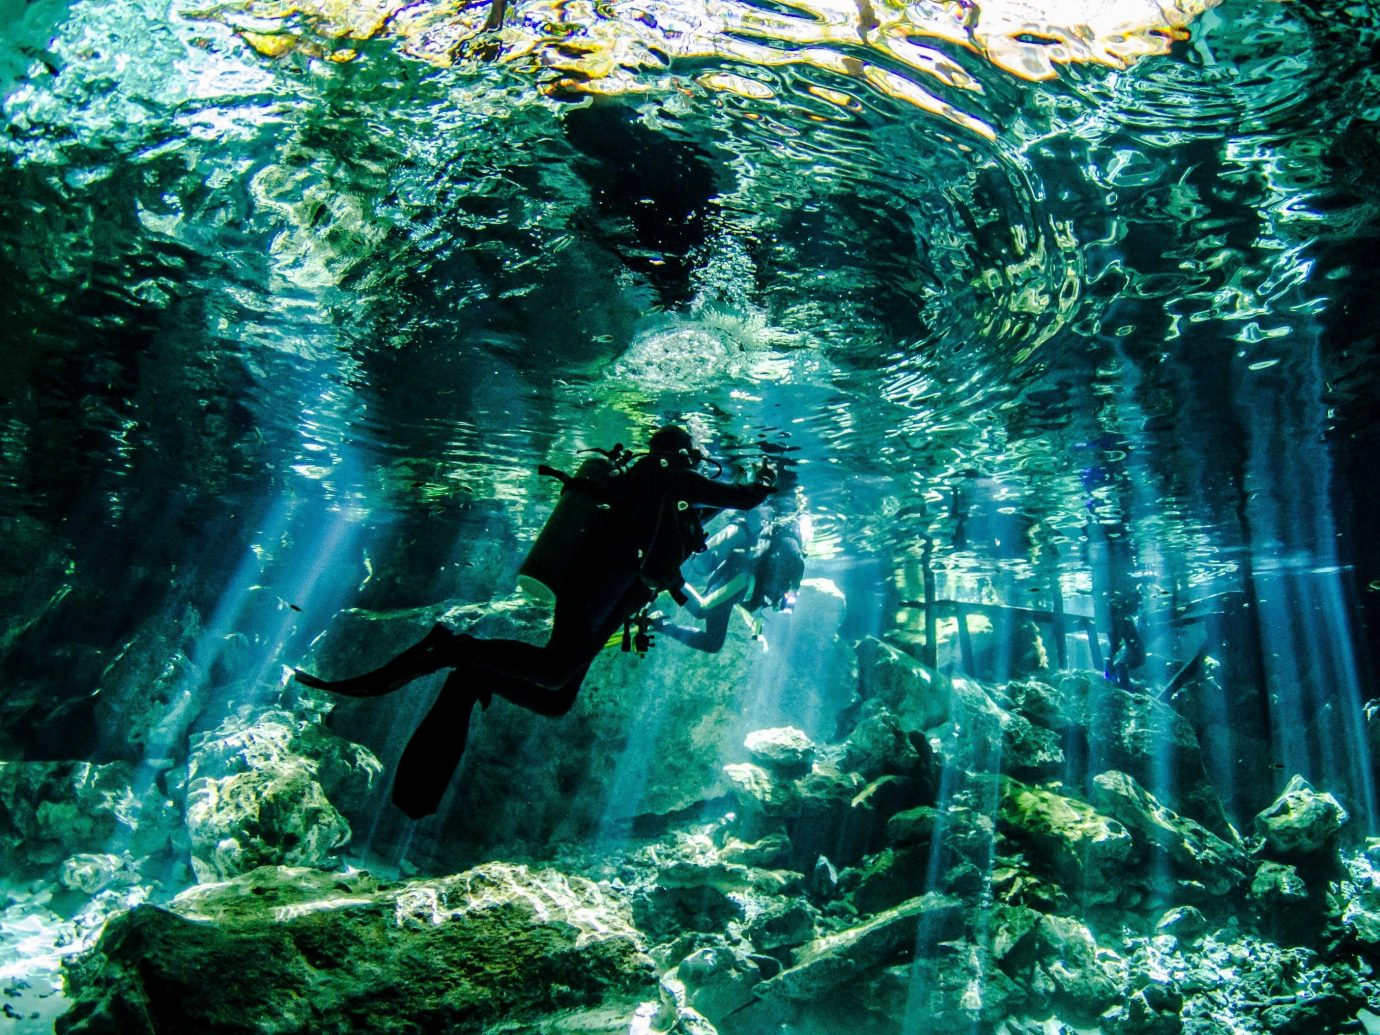 diver in blue waater of a cenote